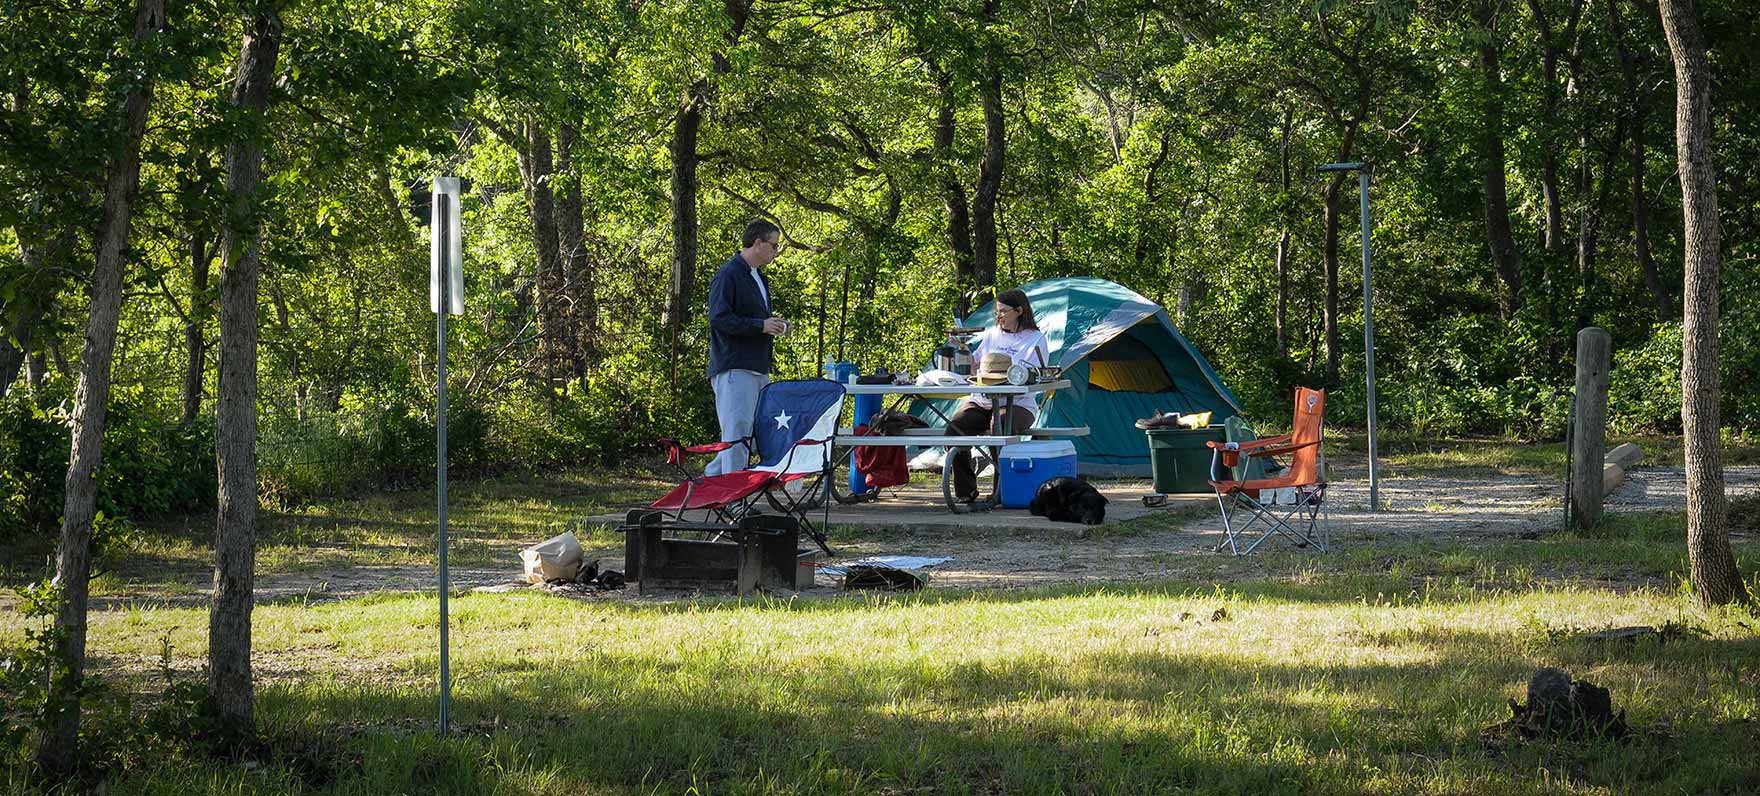 Eisenhower state park texas parks wildlife department for Atv parks in texas with cabins